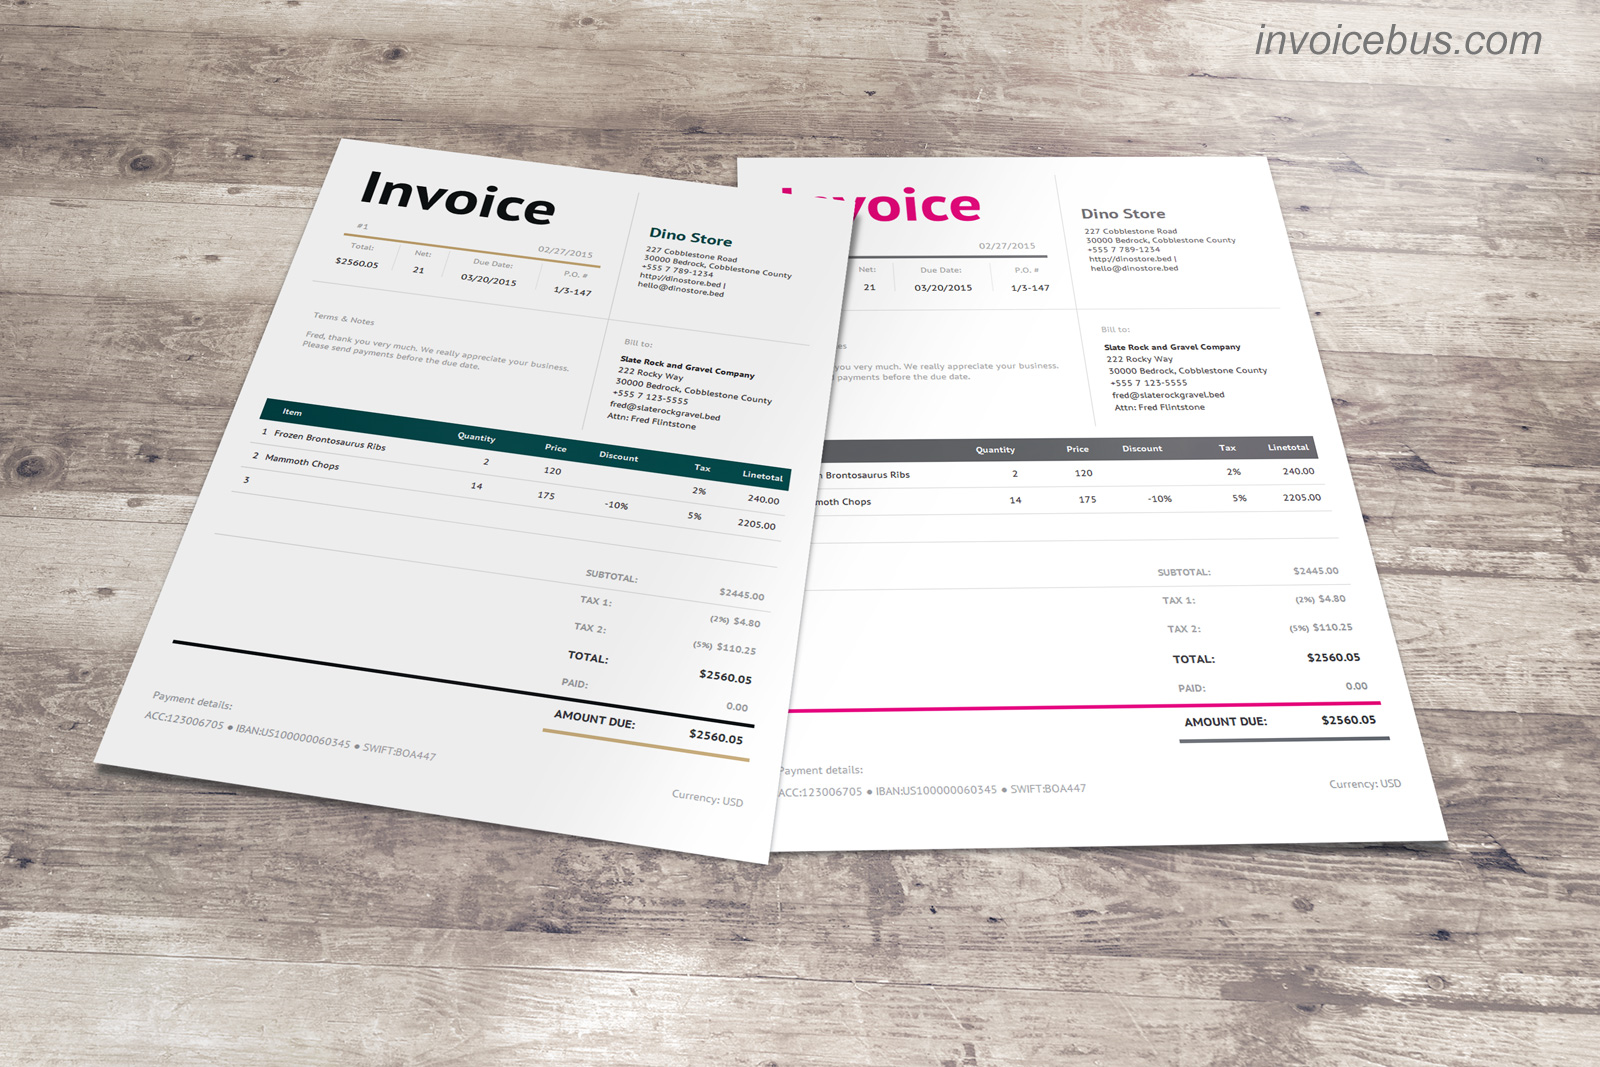 40+ Interactive Invoice Templates, Business & Finance Software Screenshot